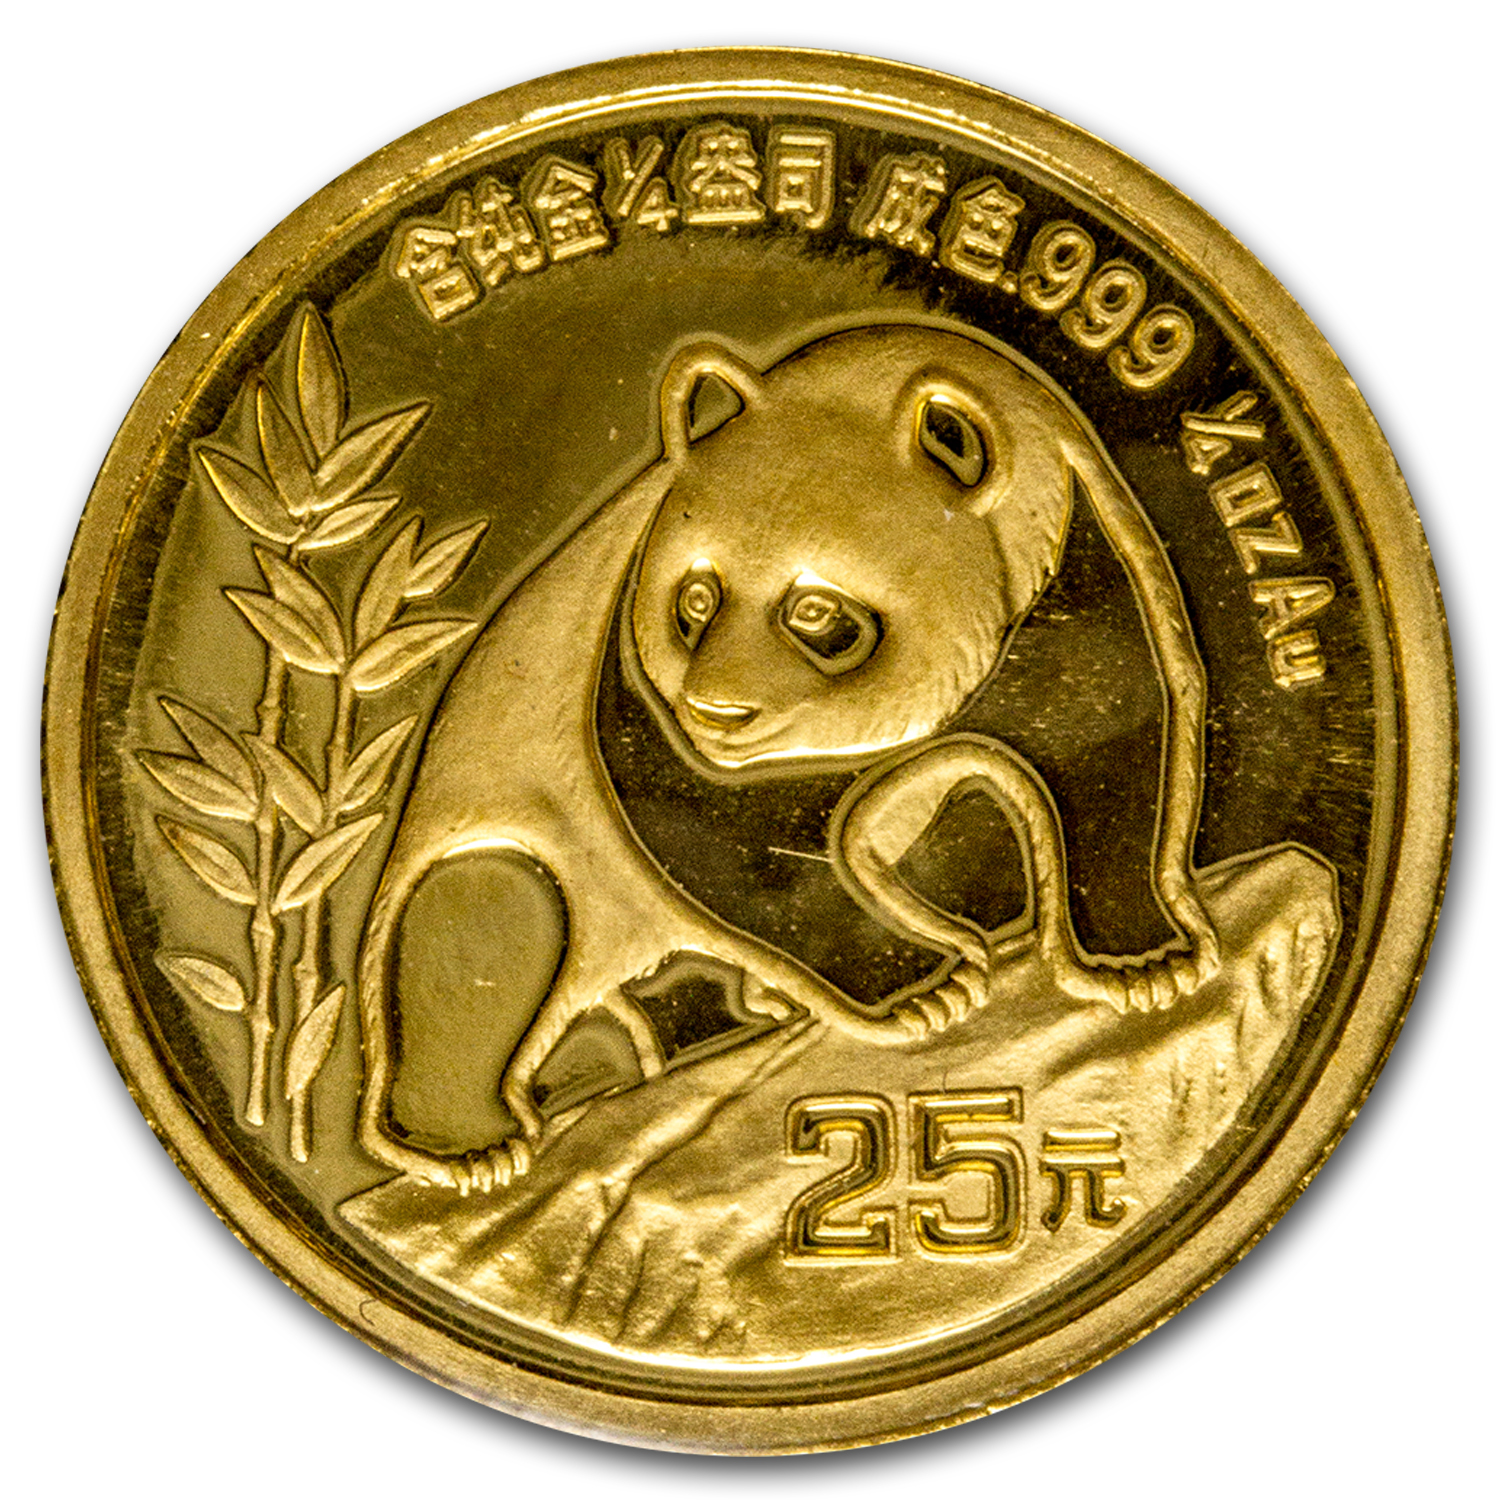 1990 (1/4 oz) Gold Chinese Pandas - Large Date (Sealed)